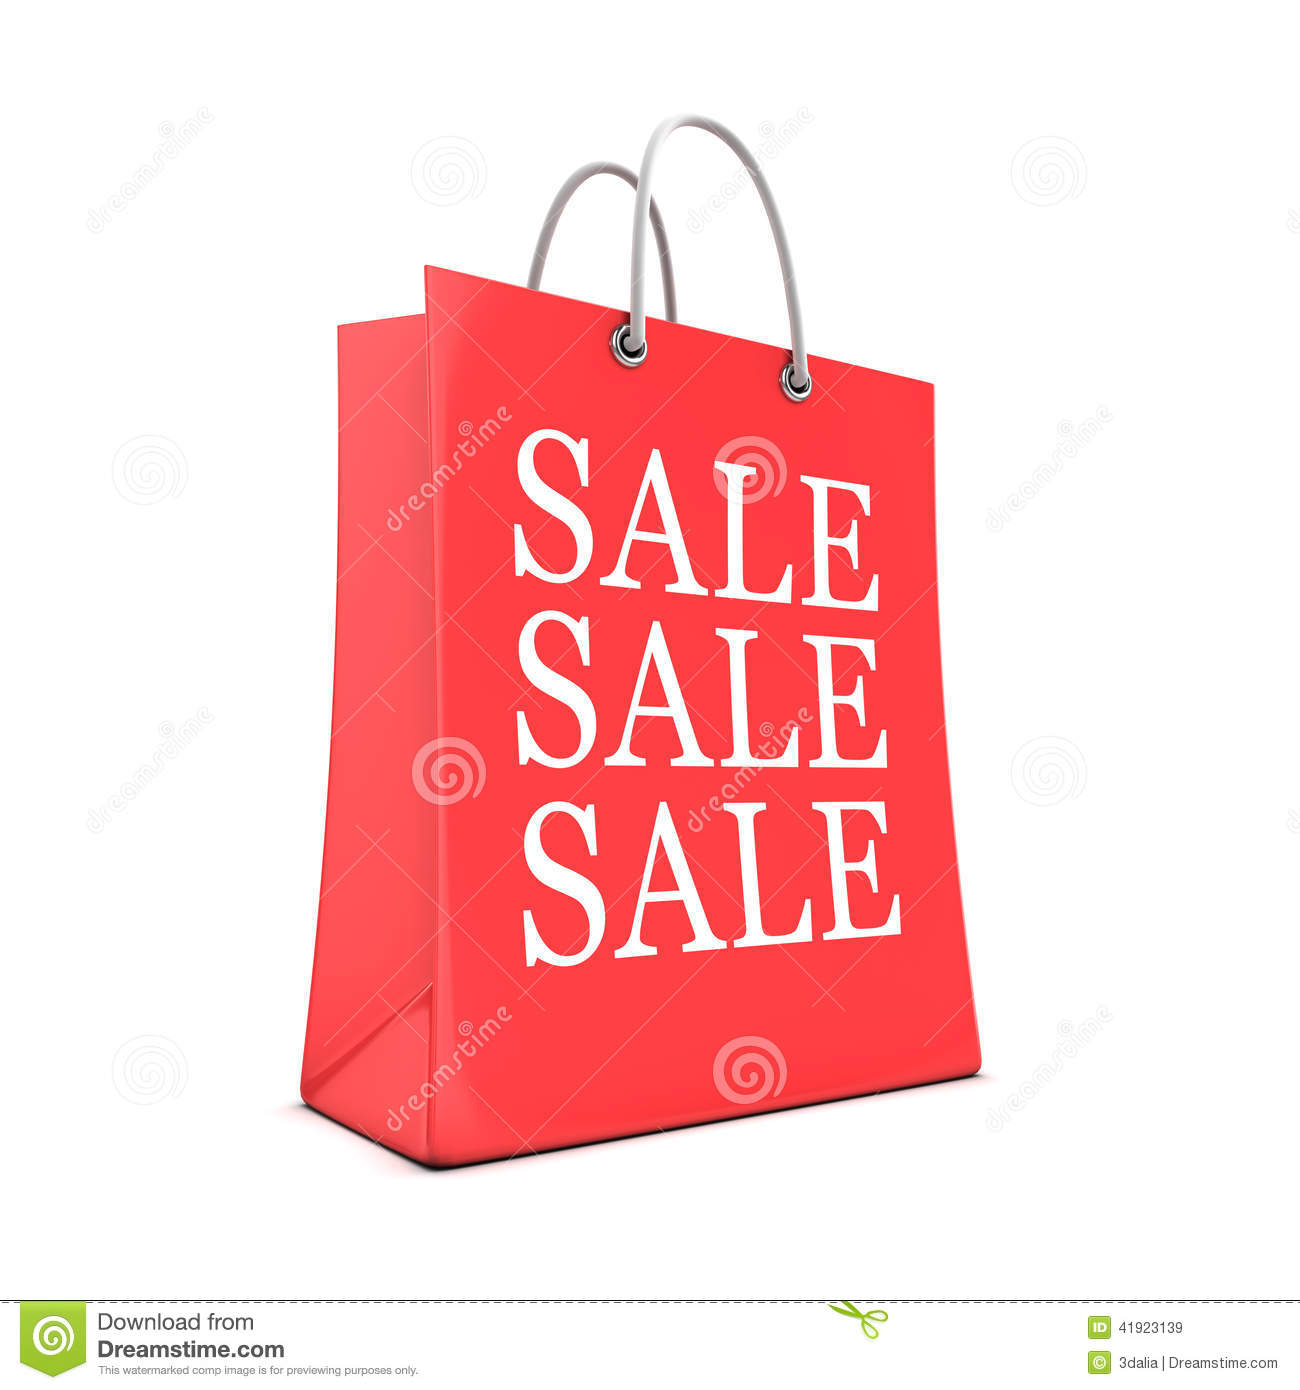 b5530b4f0b4 3d Red Shopping Bag From The Sales Stock Illustration - Illustration ...